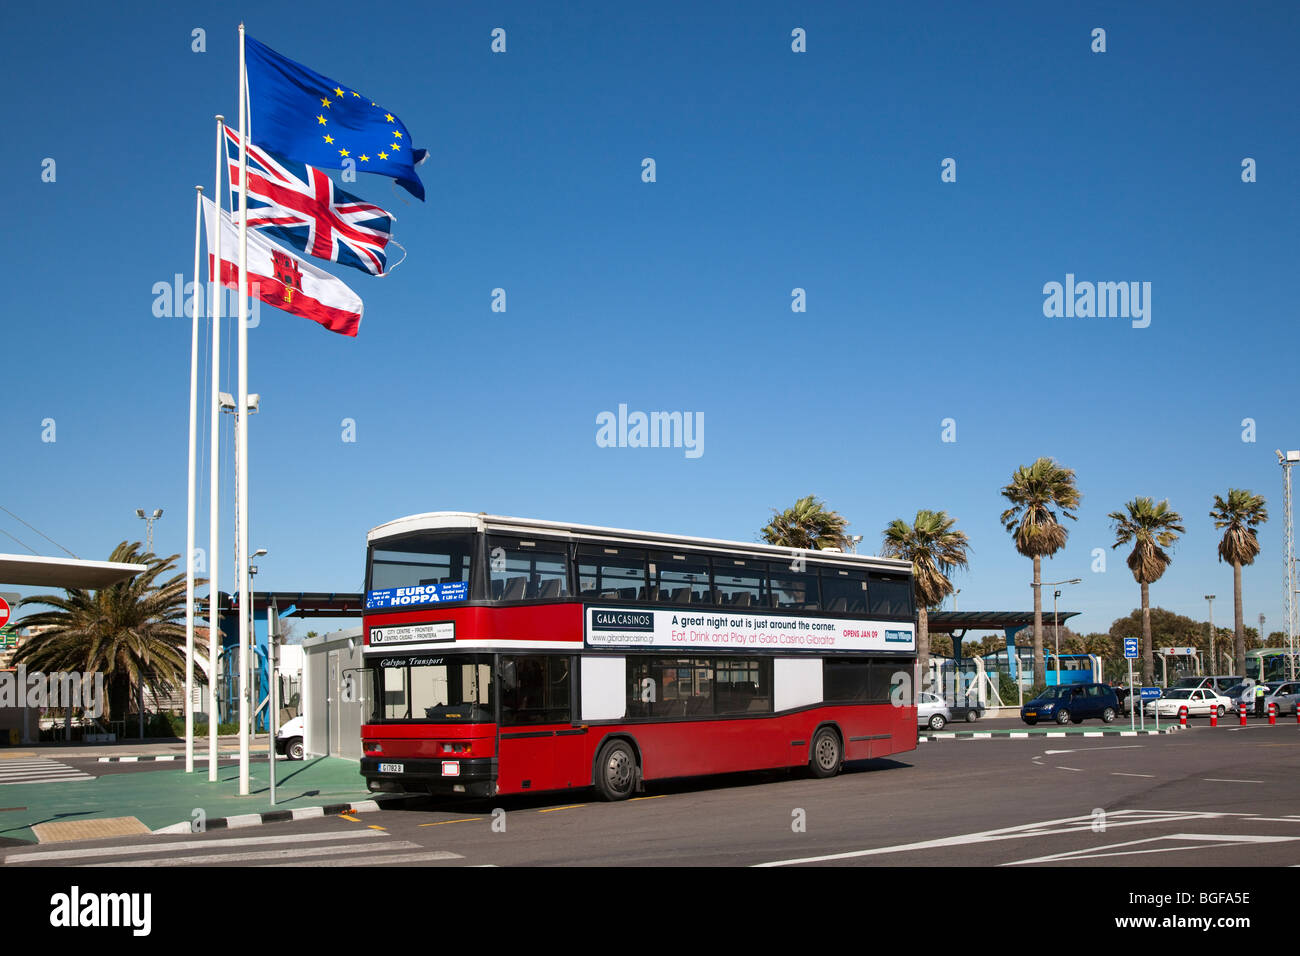 Red Double Decker Bus, Gibraltar - Stock Image